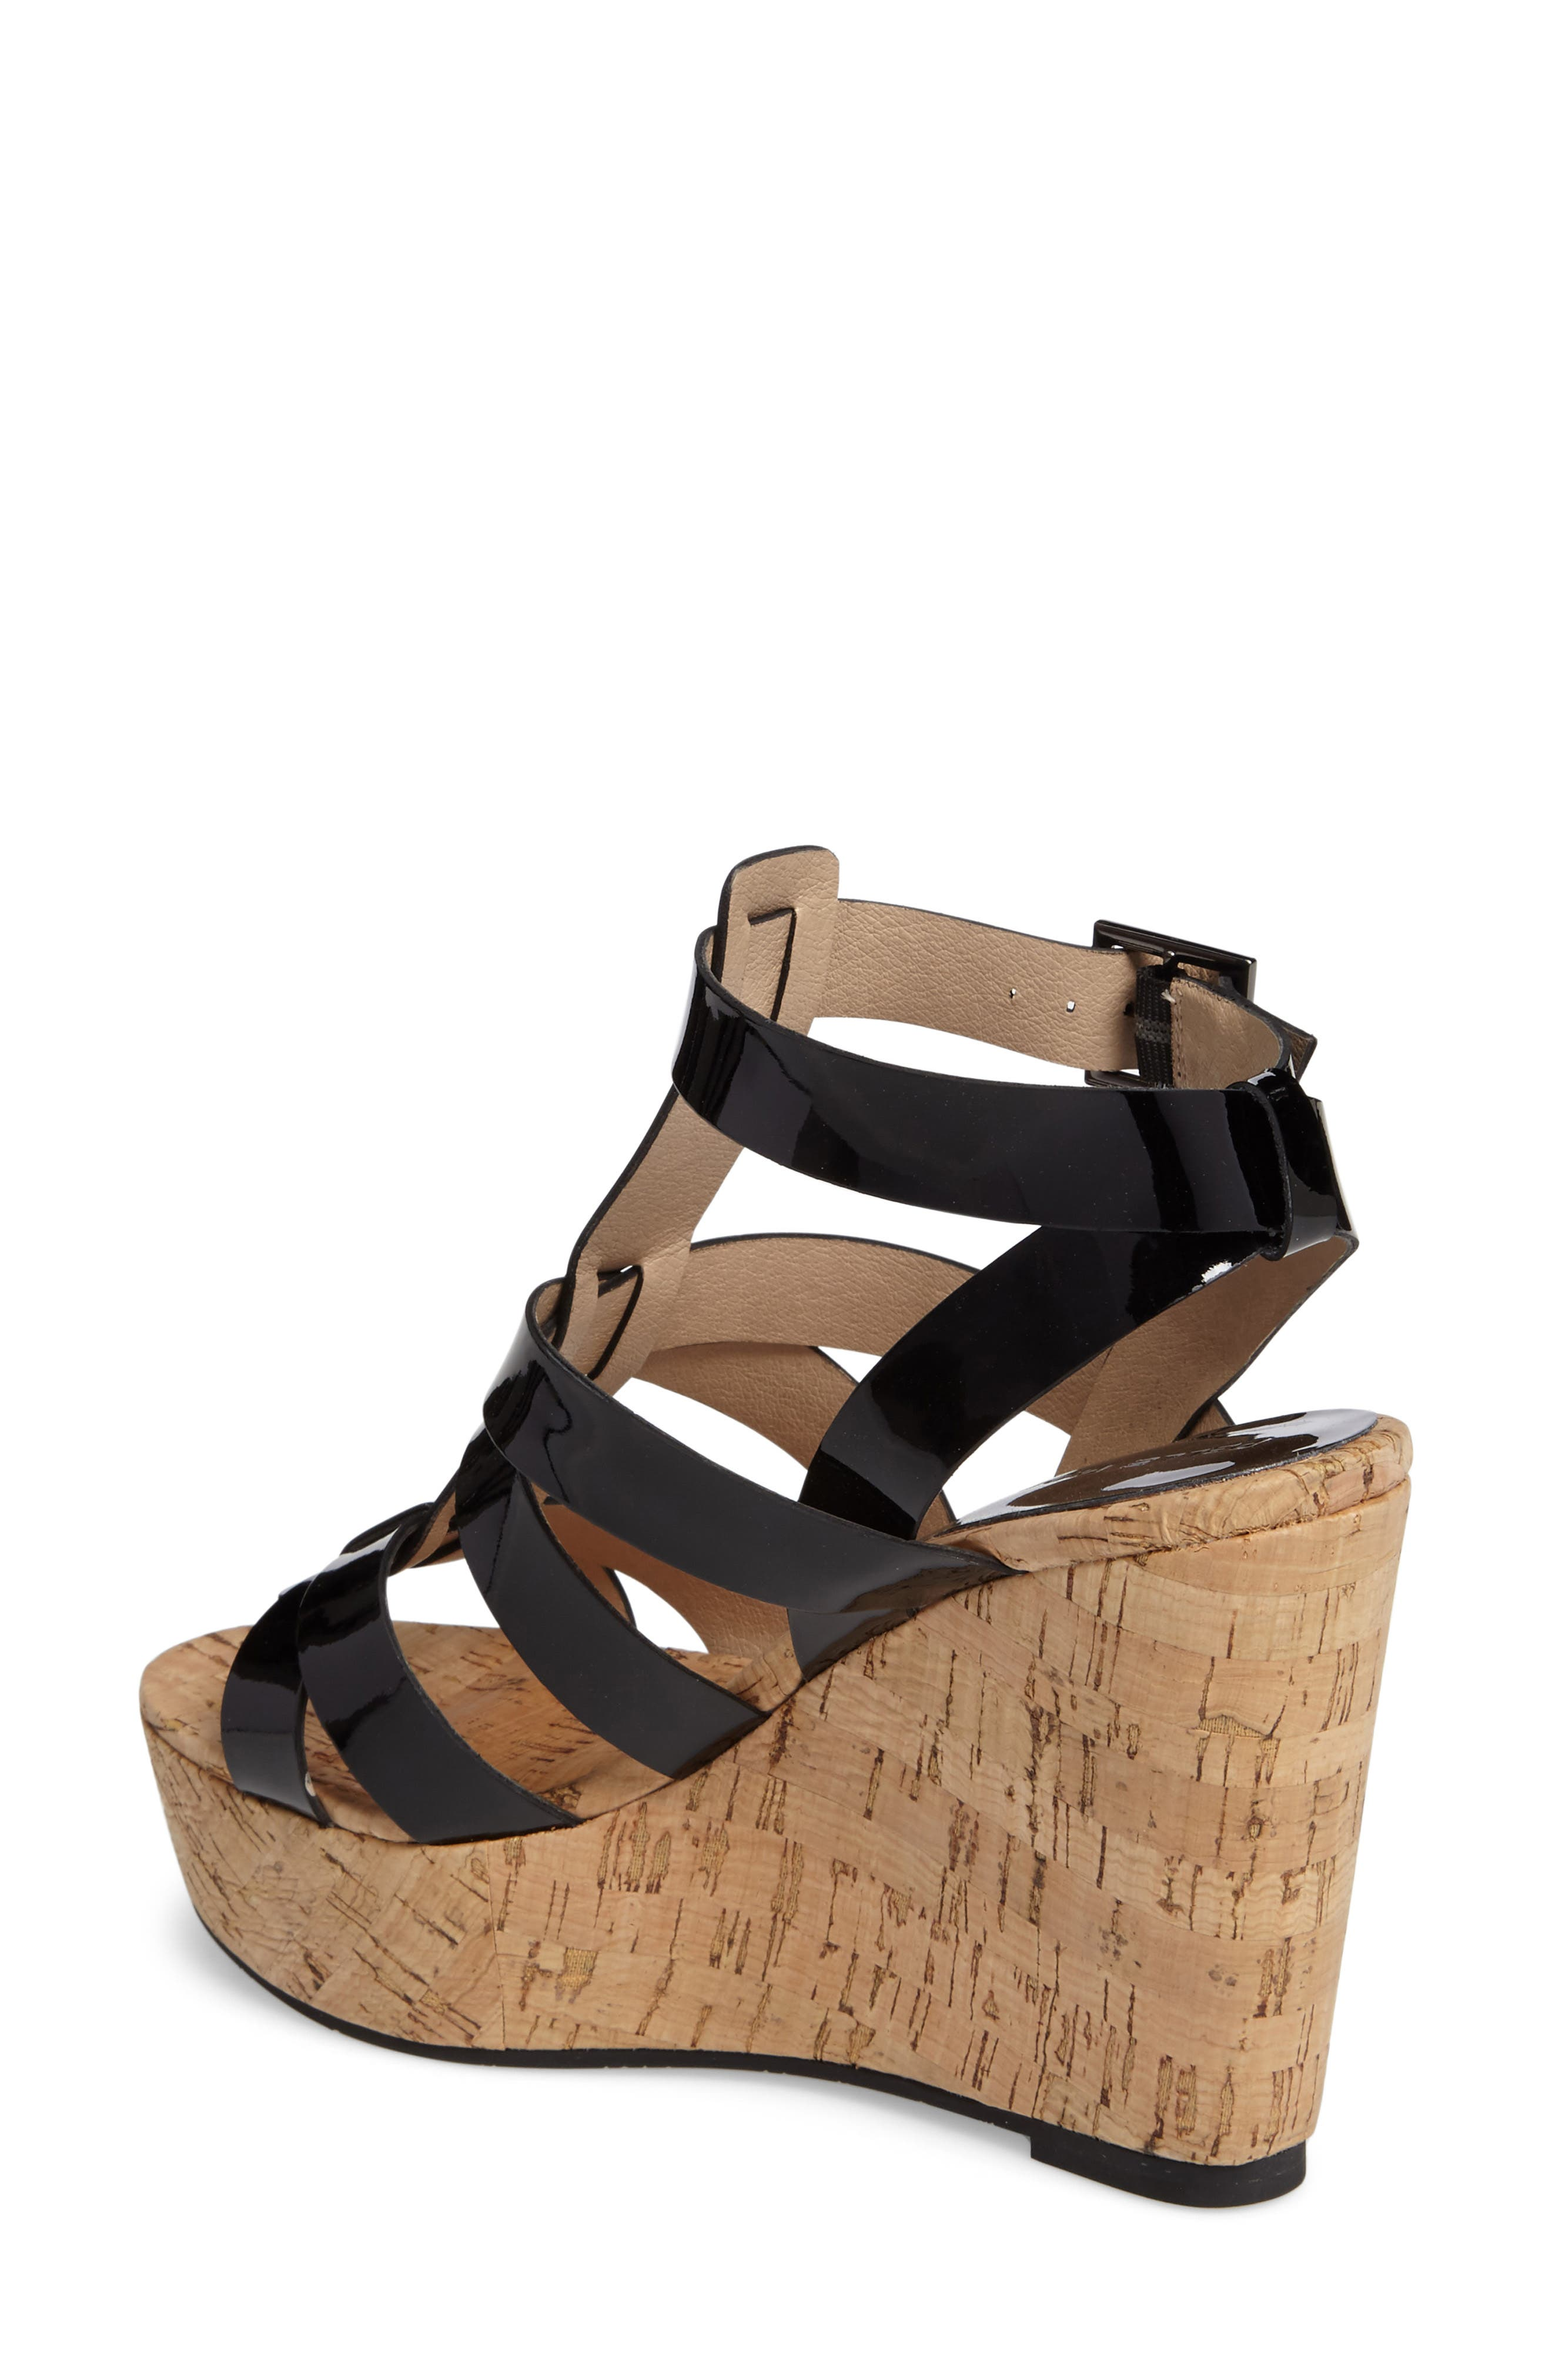 Rayjay Wedge Sandal,                             Alternate thumbnail 5, color,